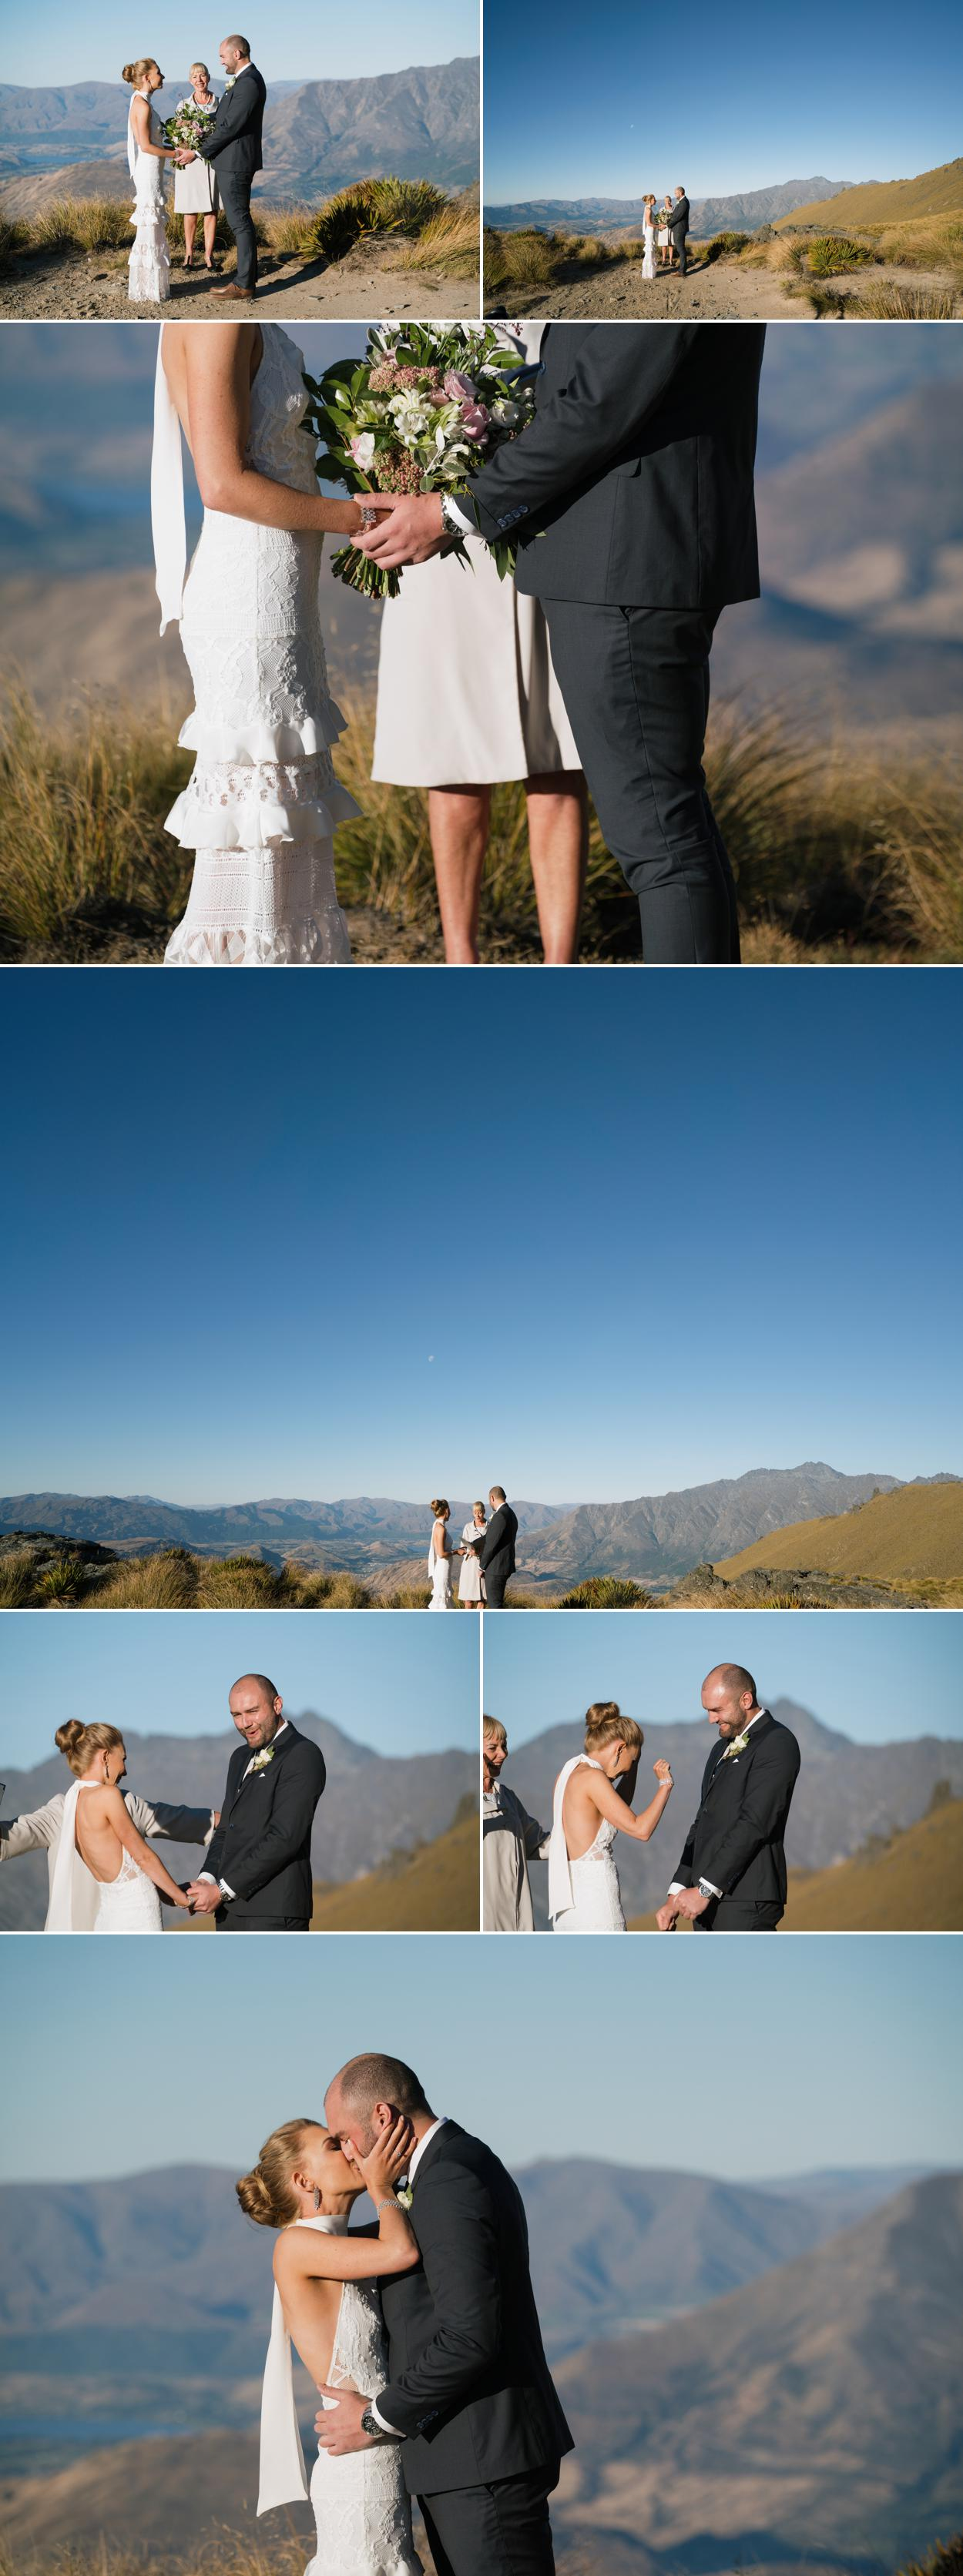 Mountain wedding planner in Queenstown, New Zealand